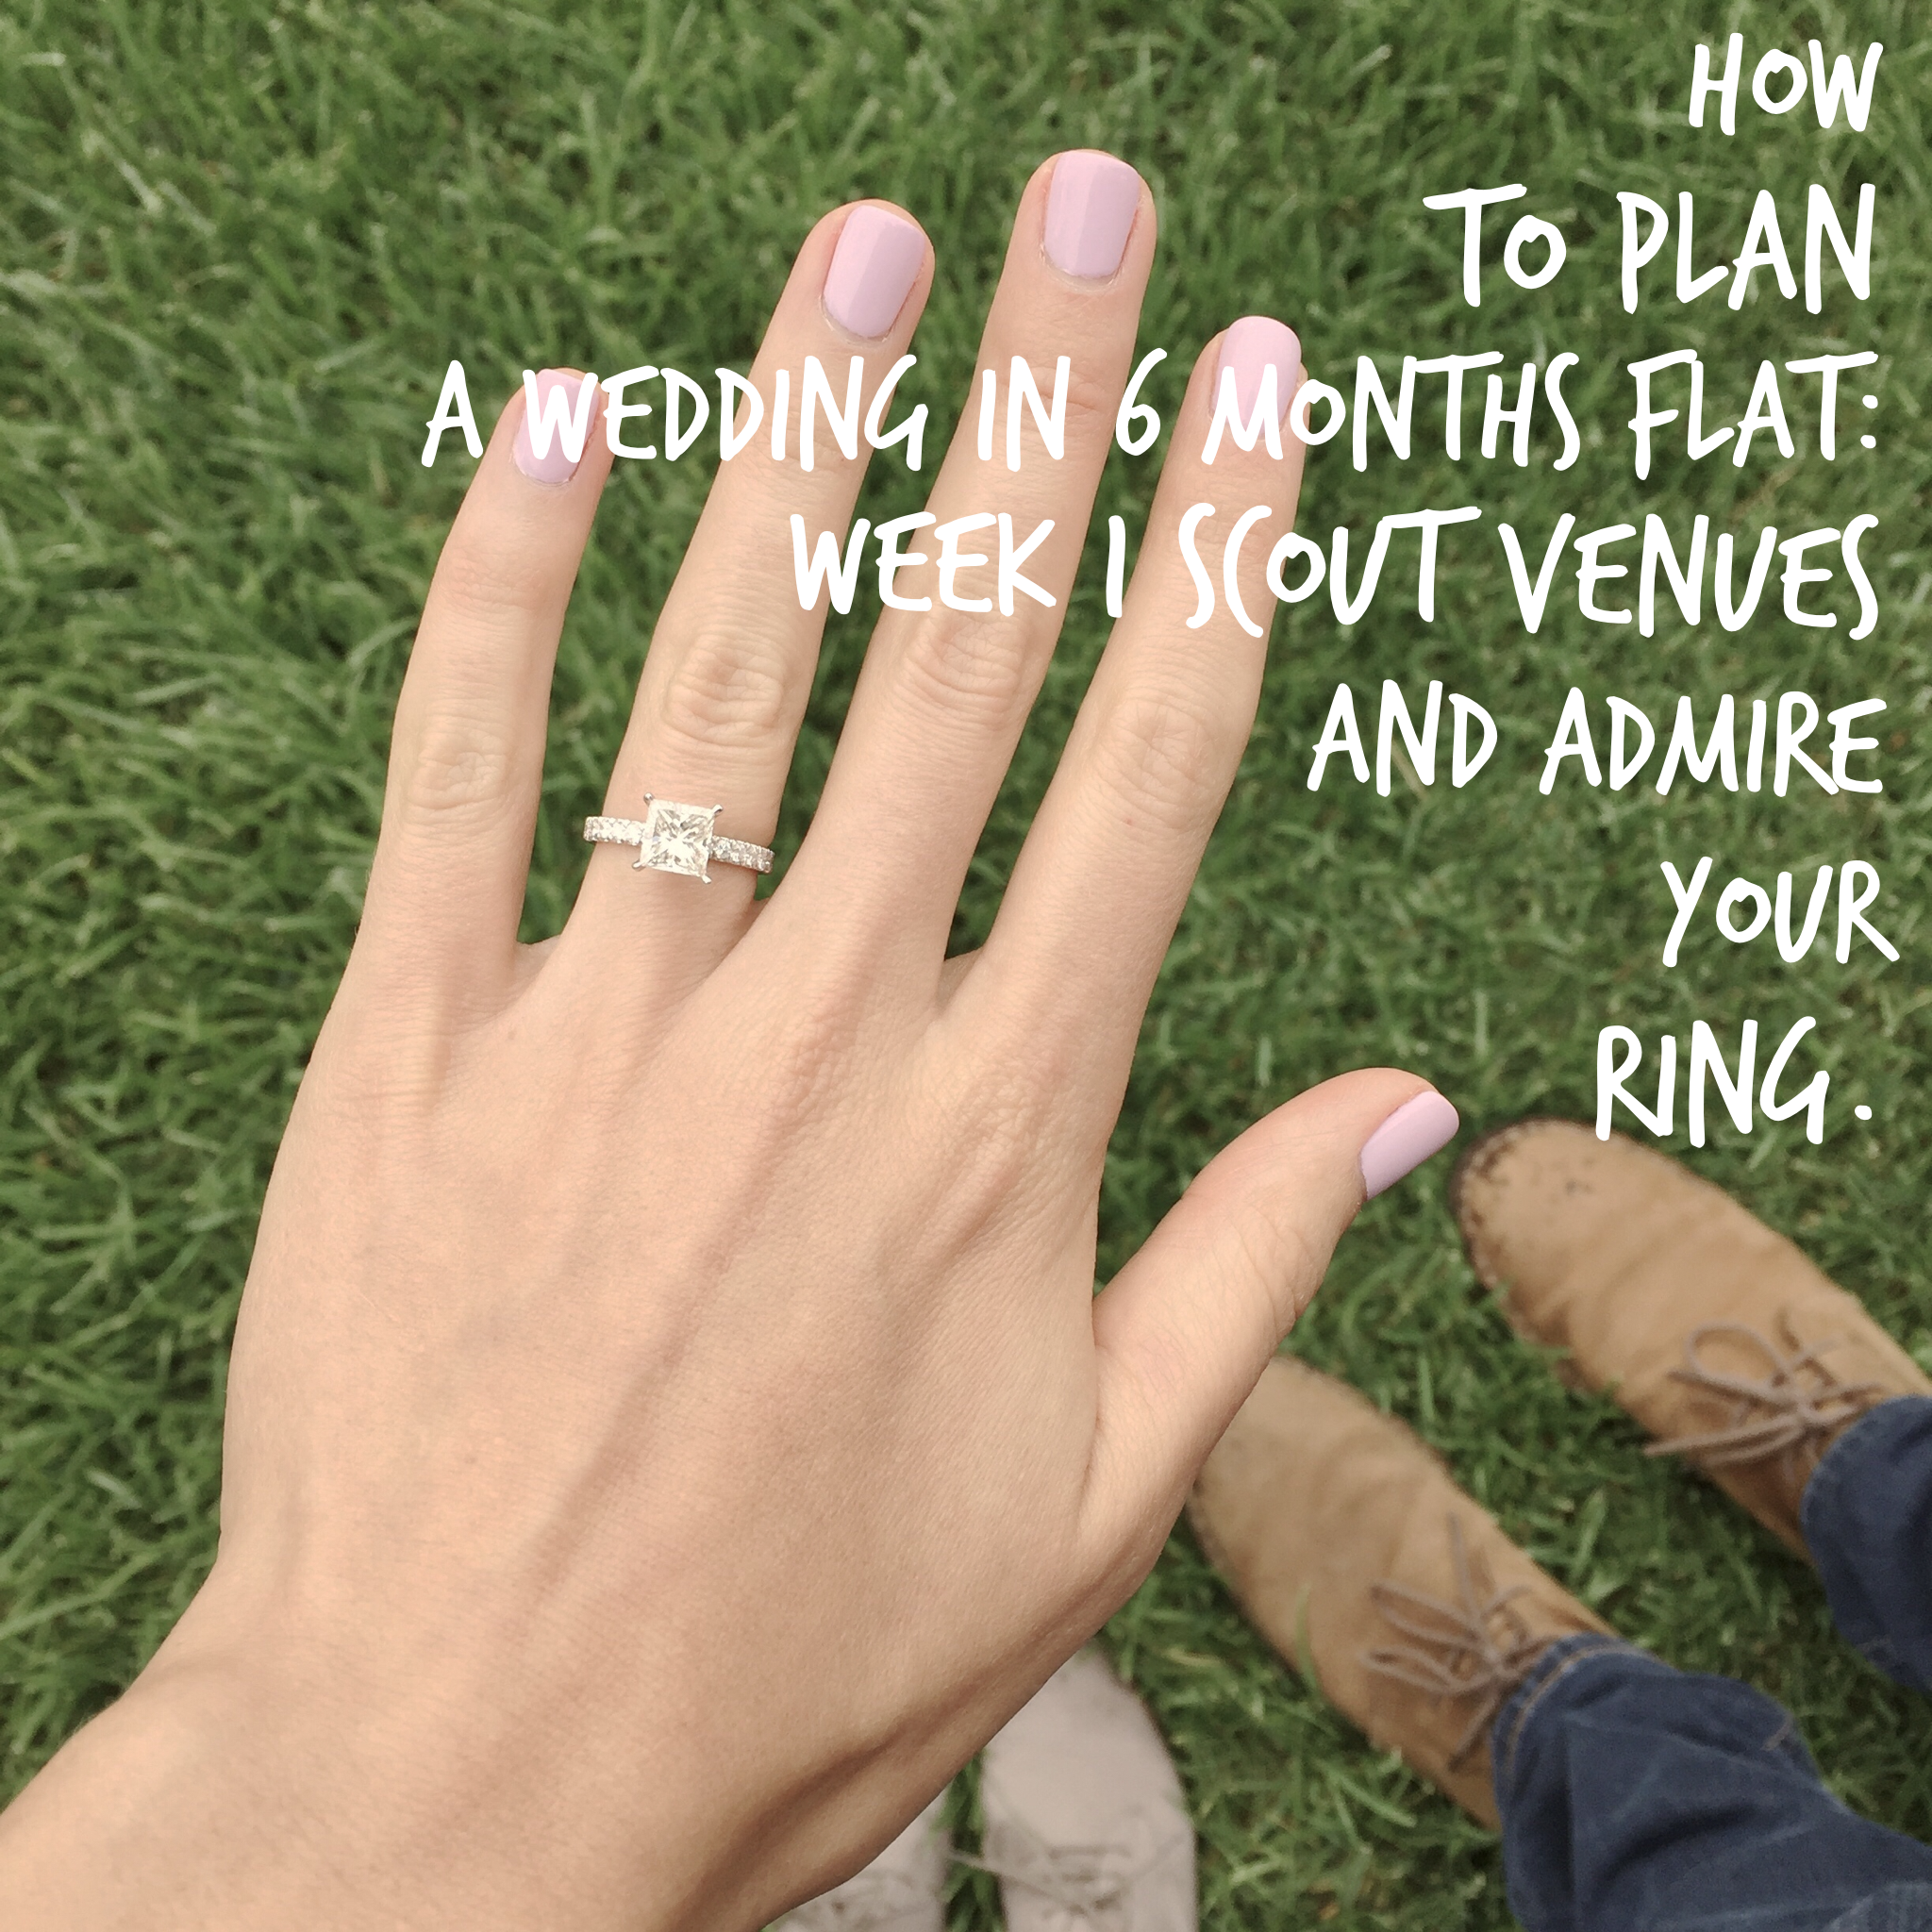 How To Plan A Wedding In 6 Months Flat: Week 1